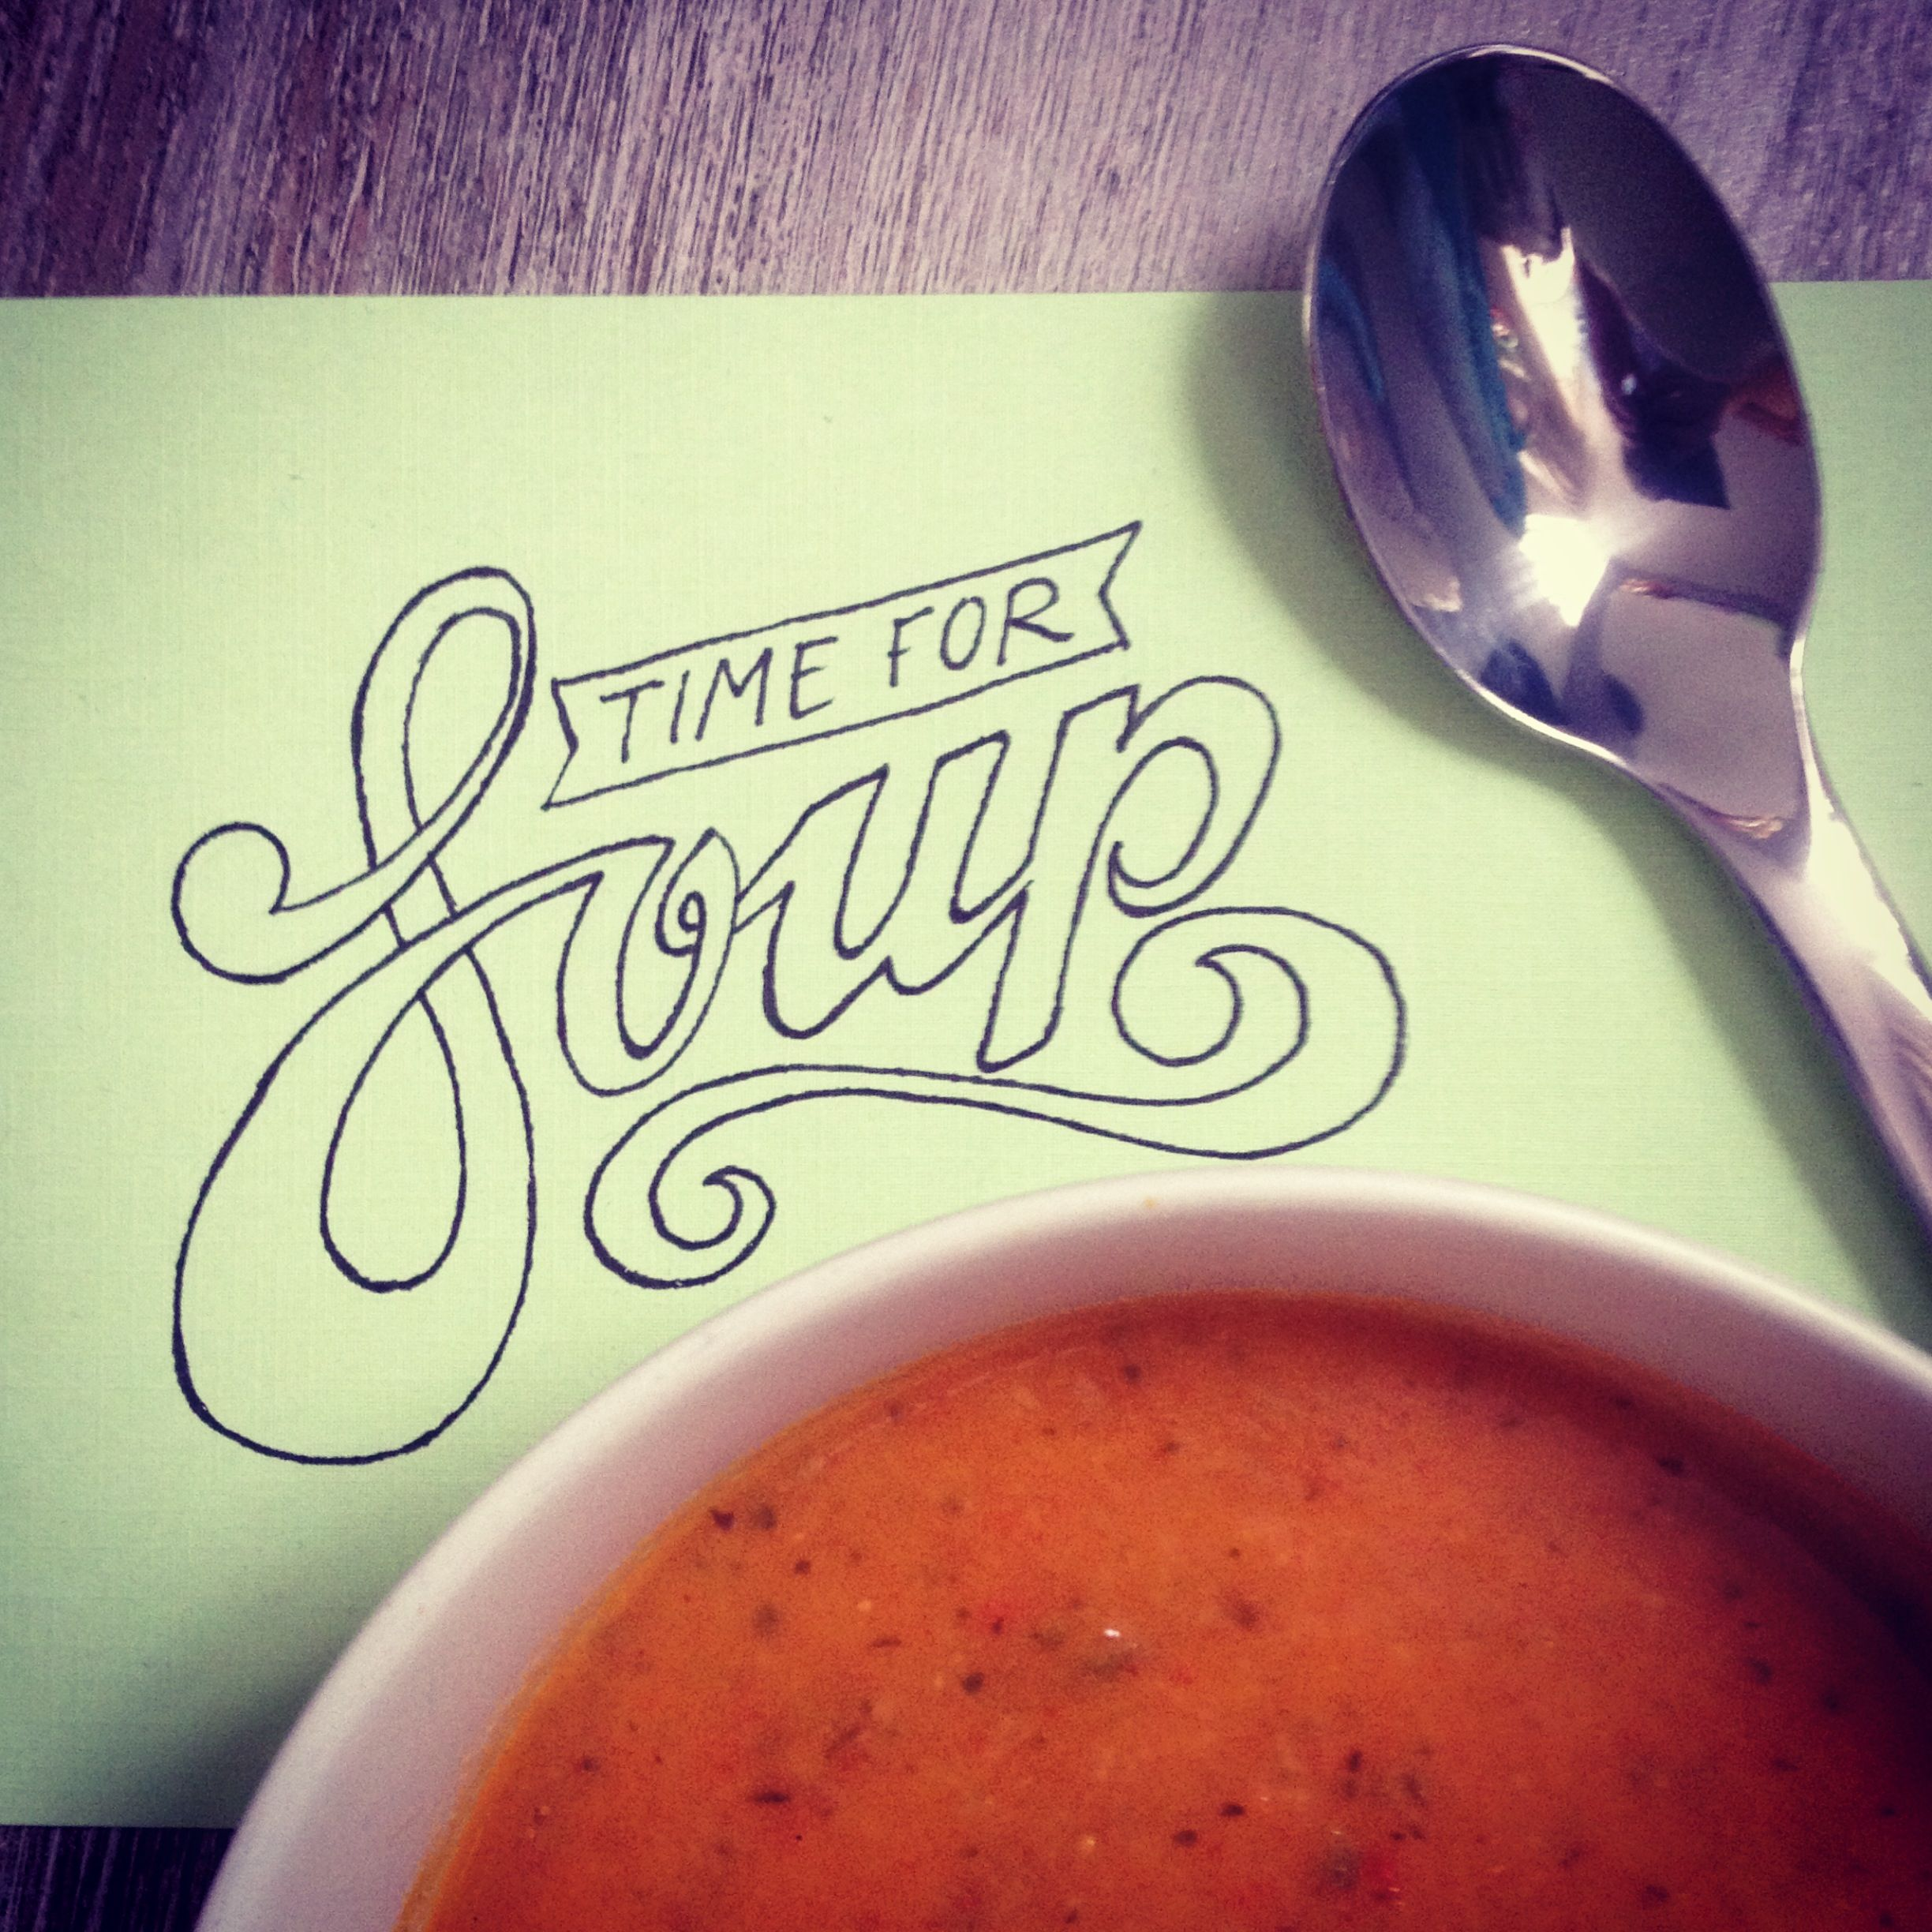 Time for soup